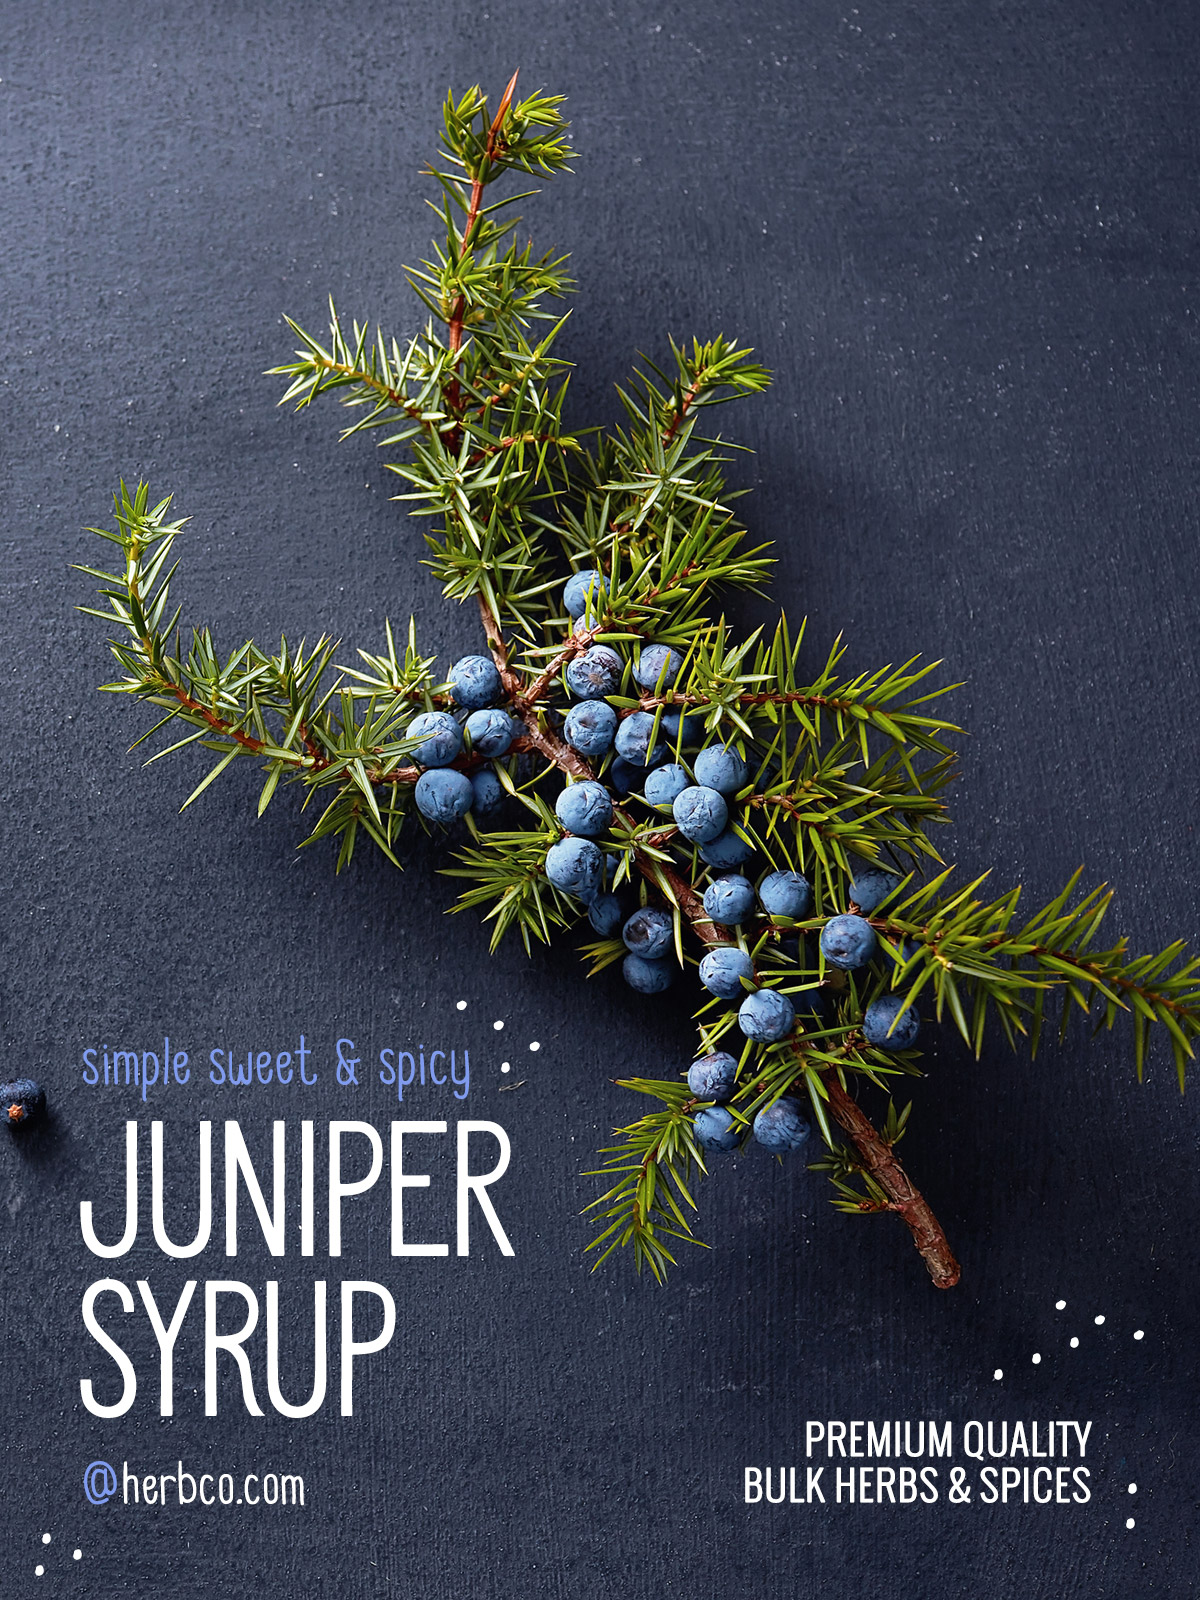 [ Recipe: Simple Sweet & Spicy Juniper Syrup ] ~ from Monterey Bay Spice Co